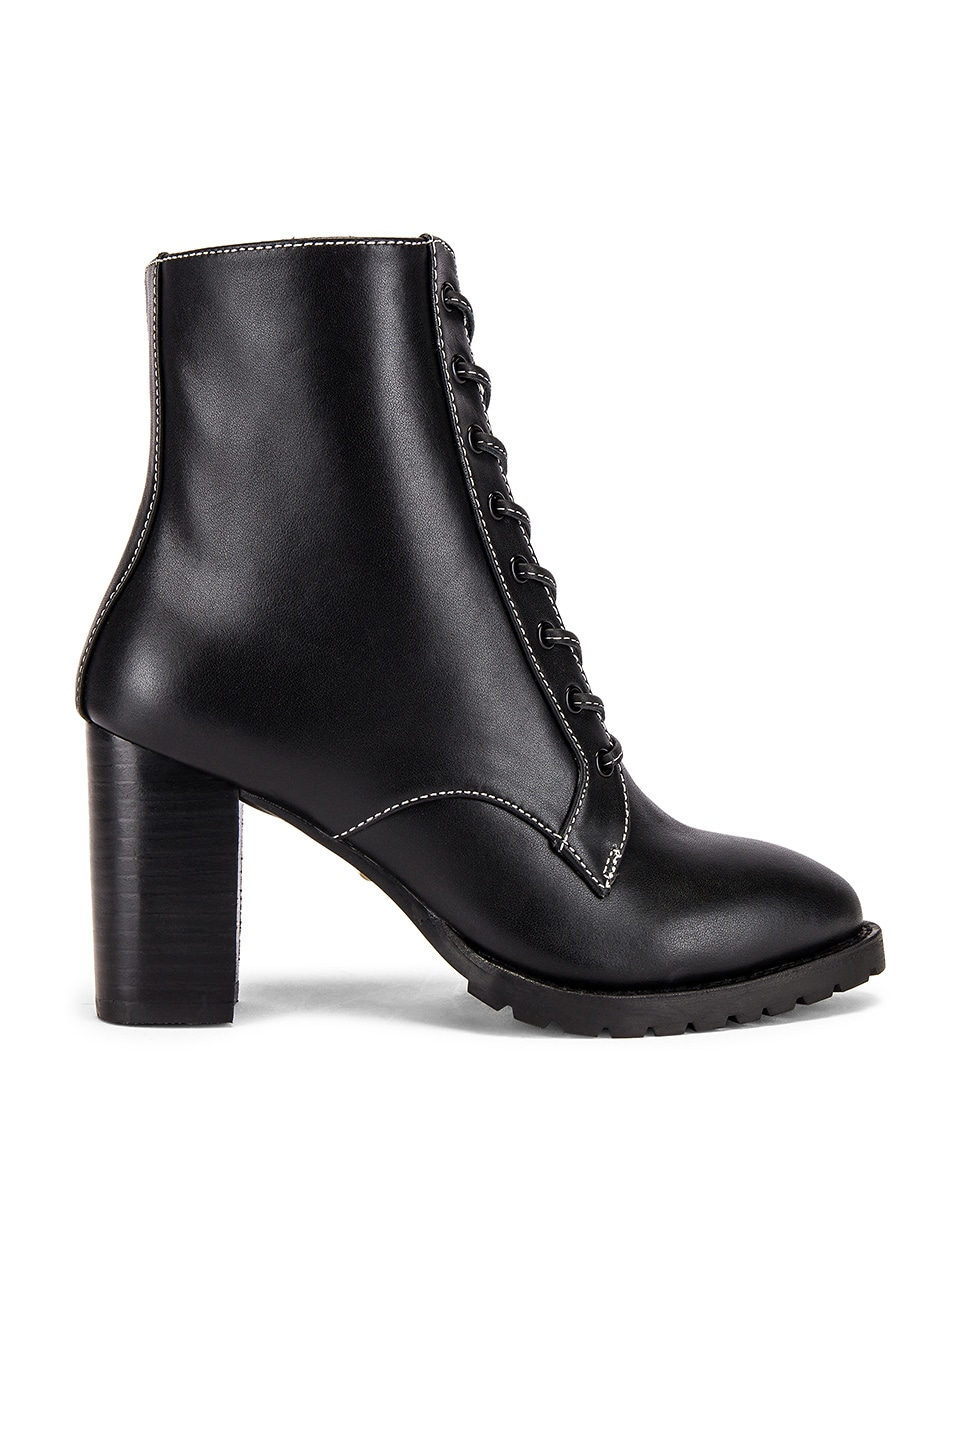 RAYE Alan Boot in Black & White